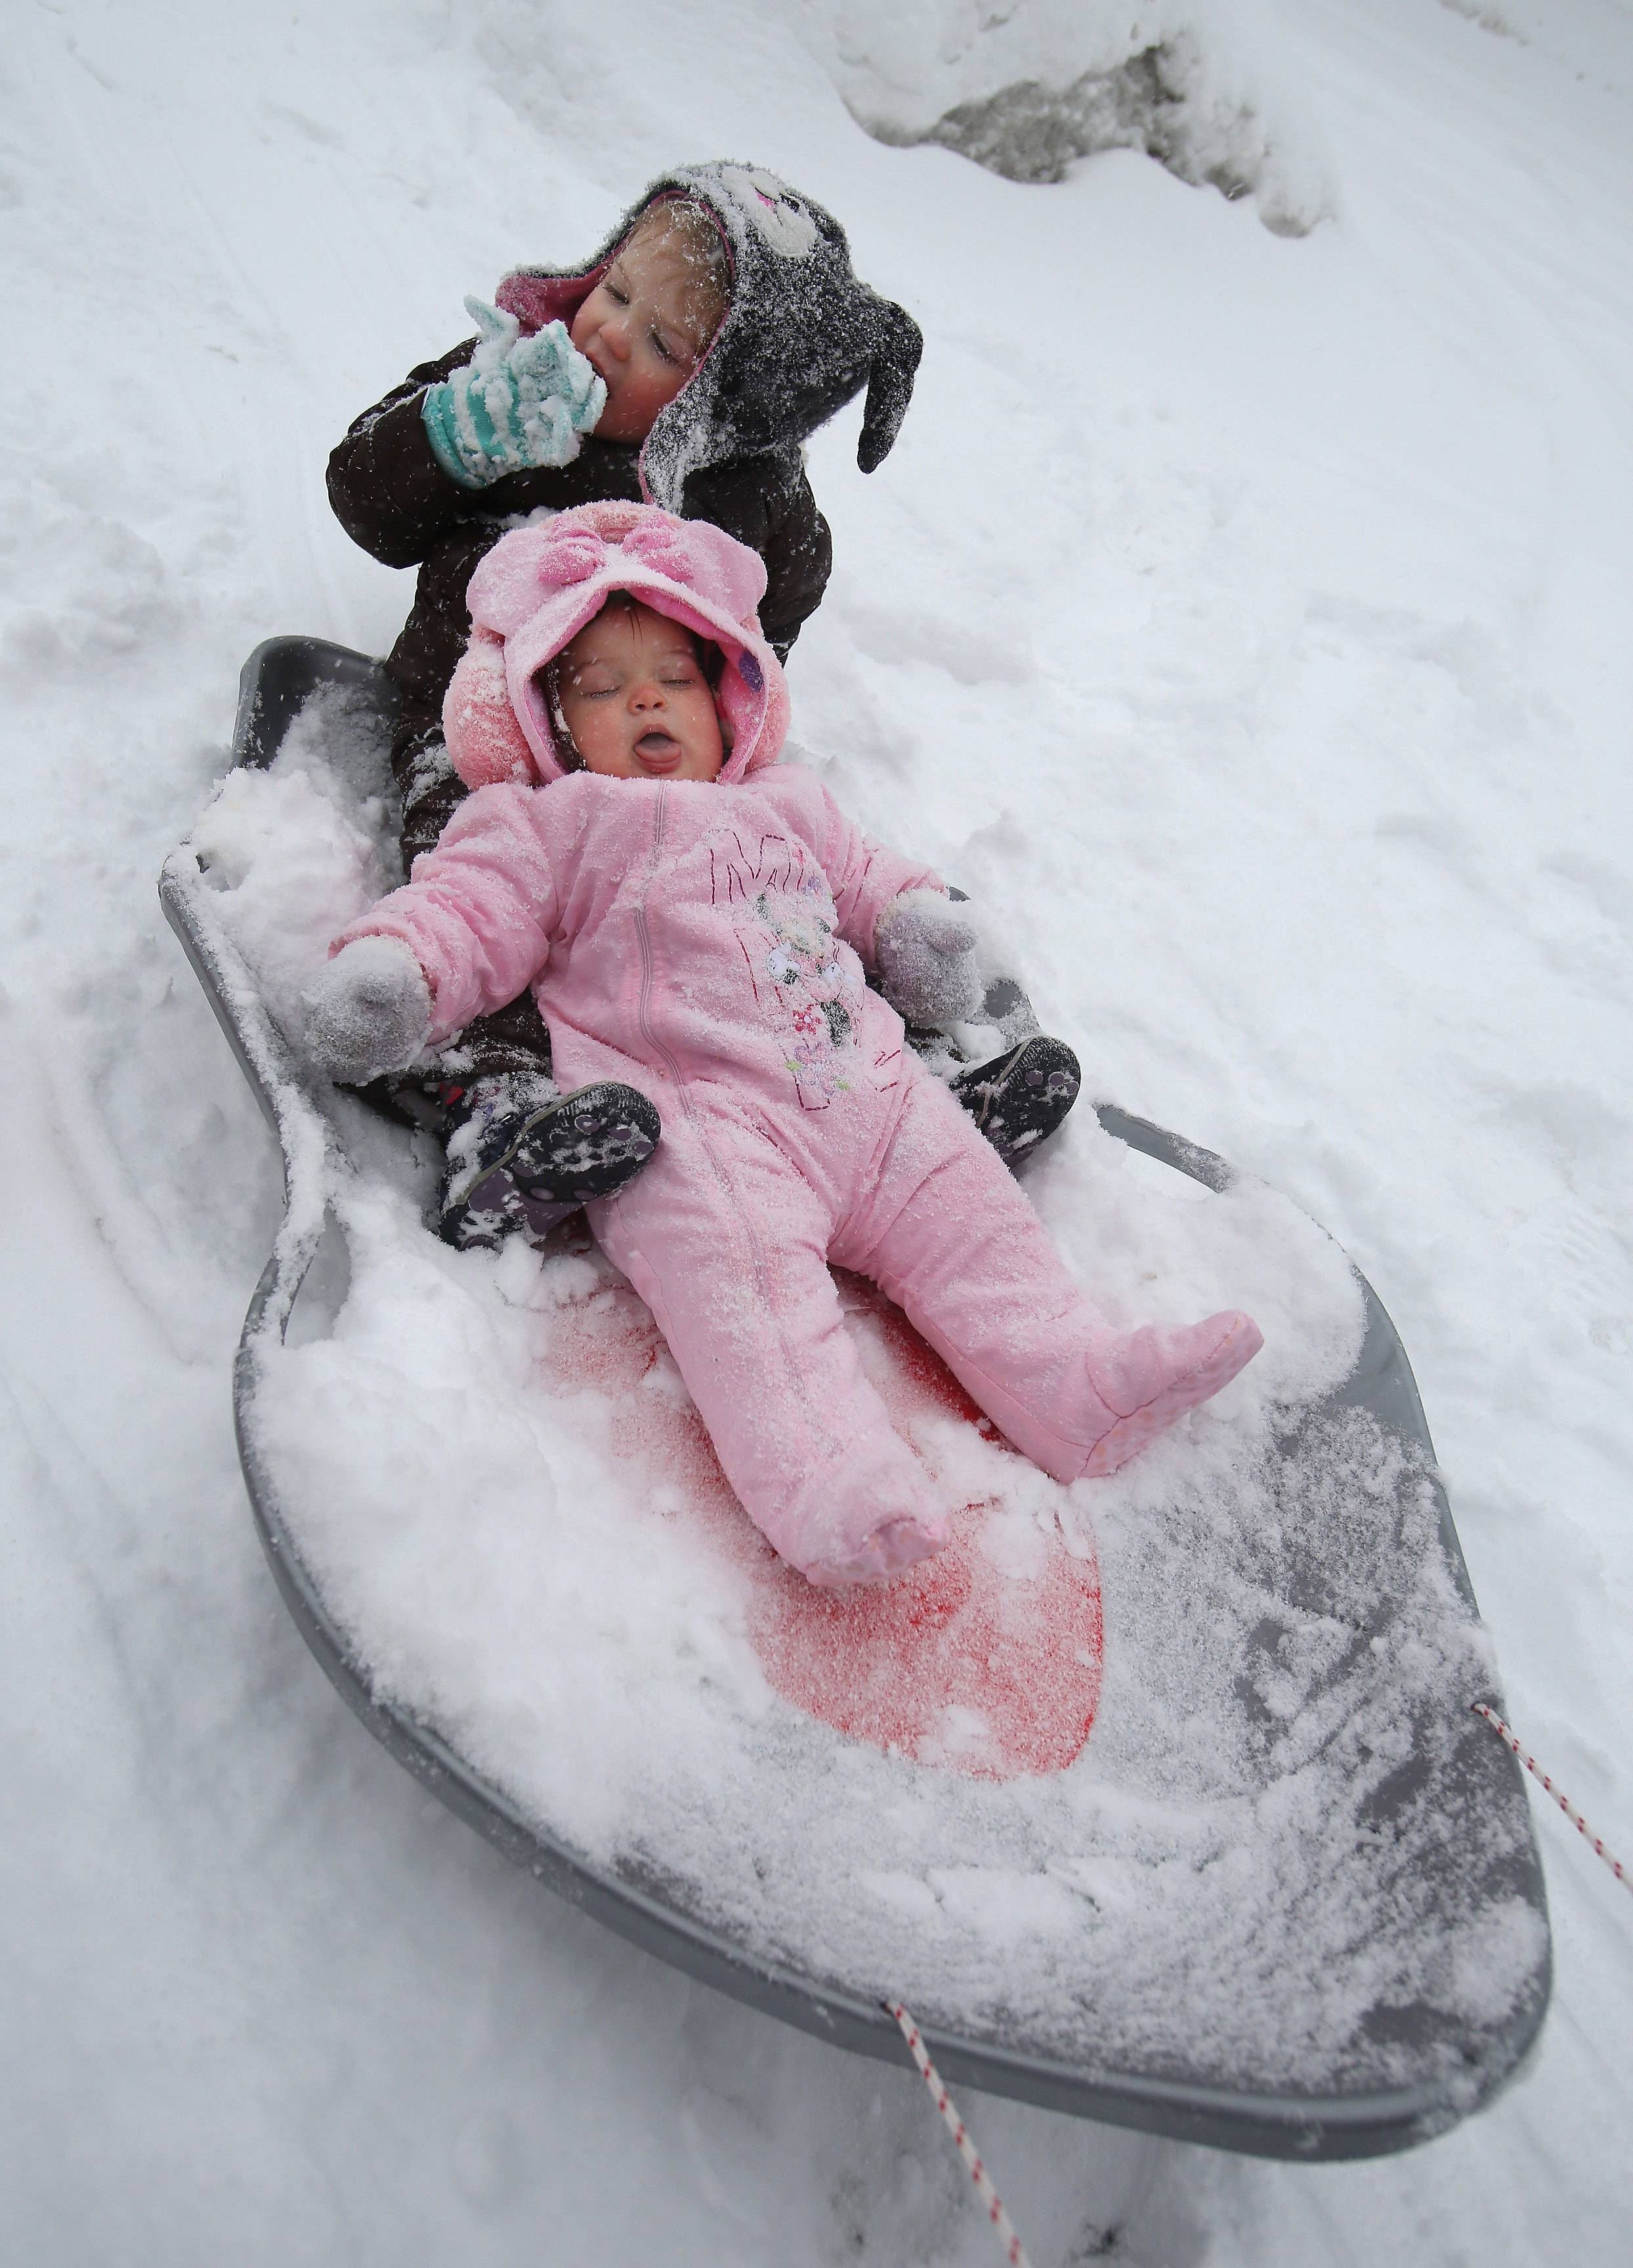 Celia Aronoff, 2, top, and her nine-month-old sister Violet, ride in a sled with her parents, Ryan and Holly, in Vernon Hills Monday as snow came down throughout the day in Lake County.